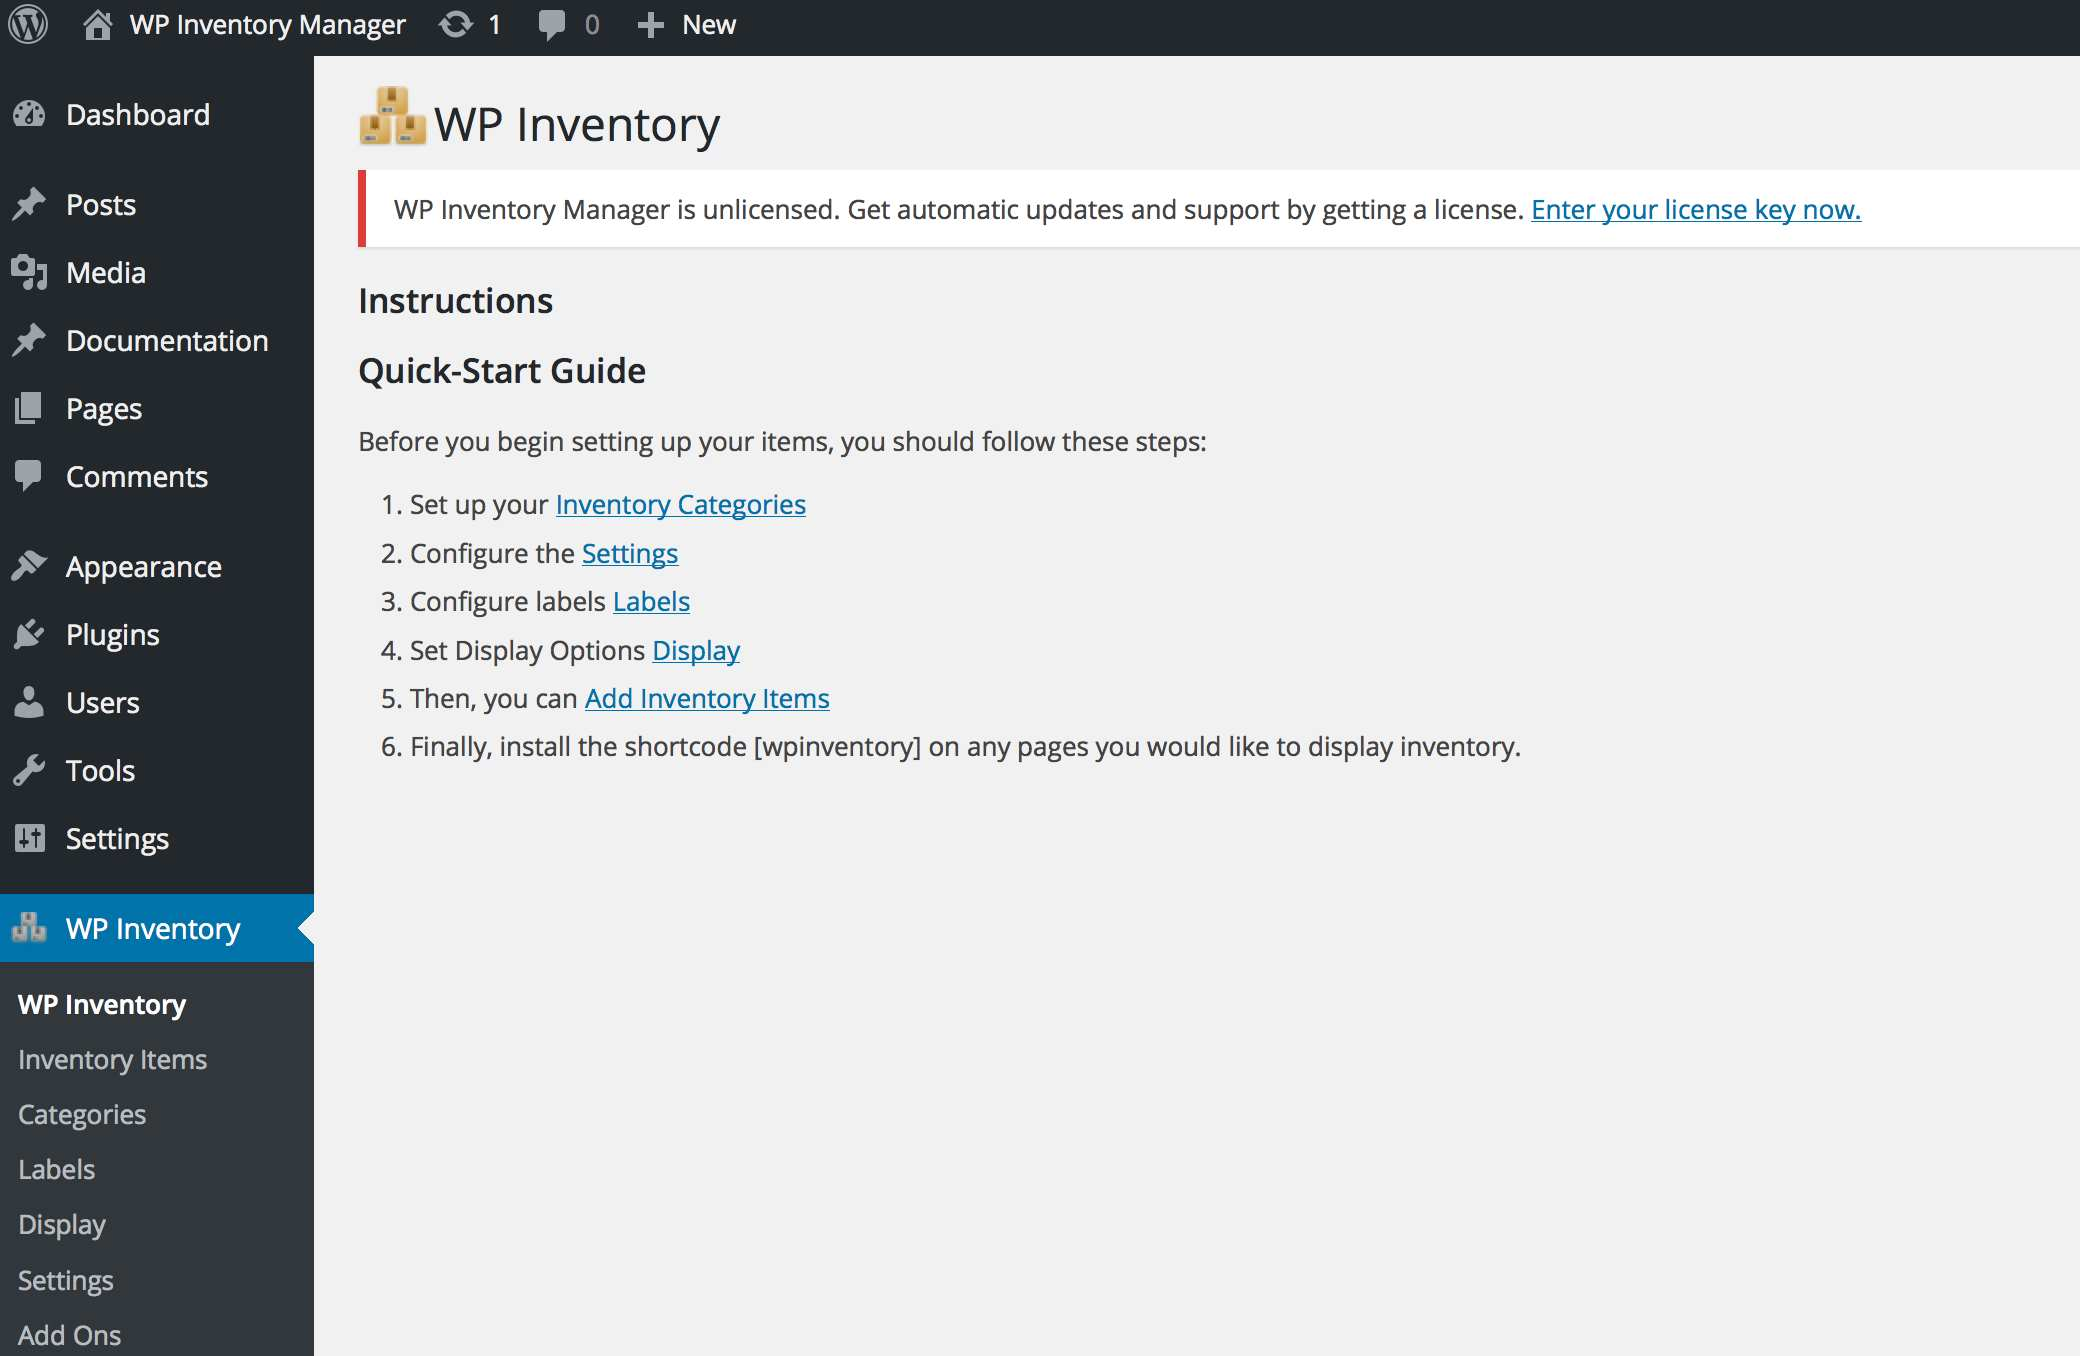 WP Inventory Manager Plugin WordPress, Download, Install